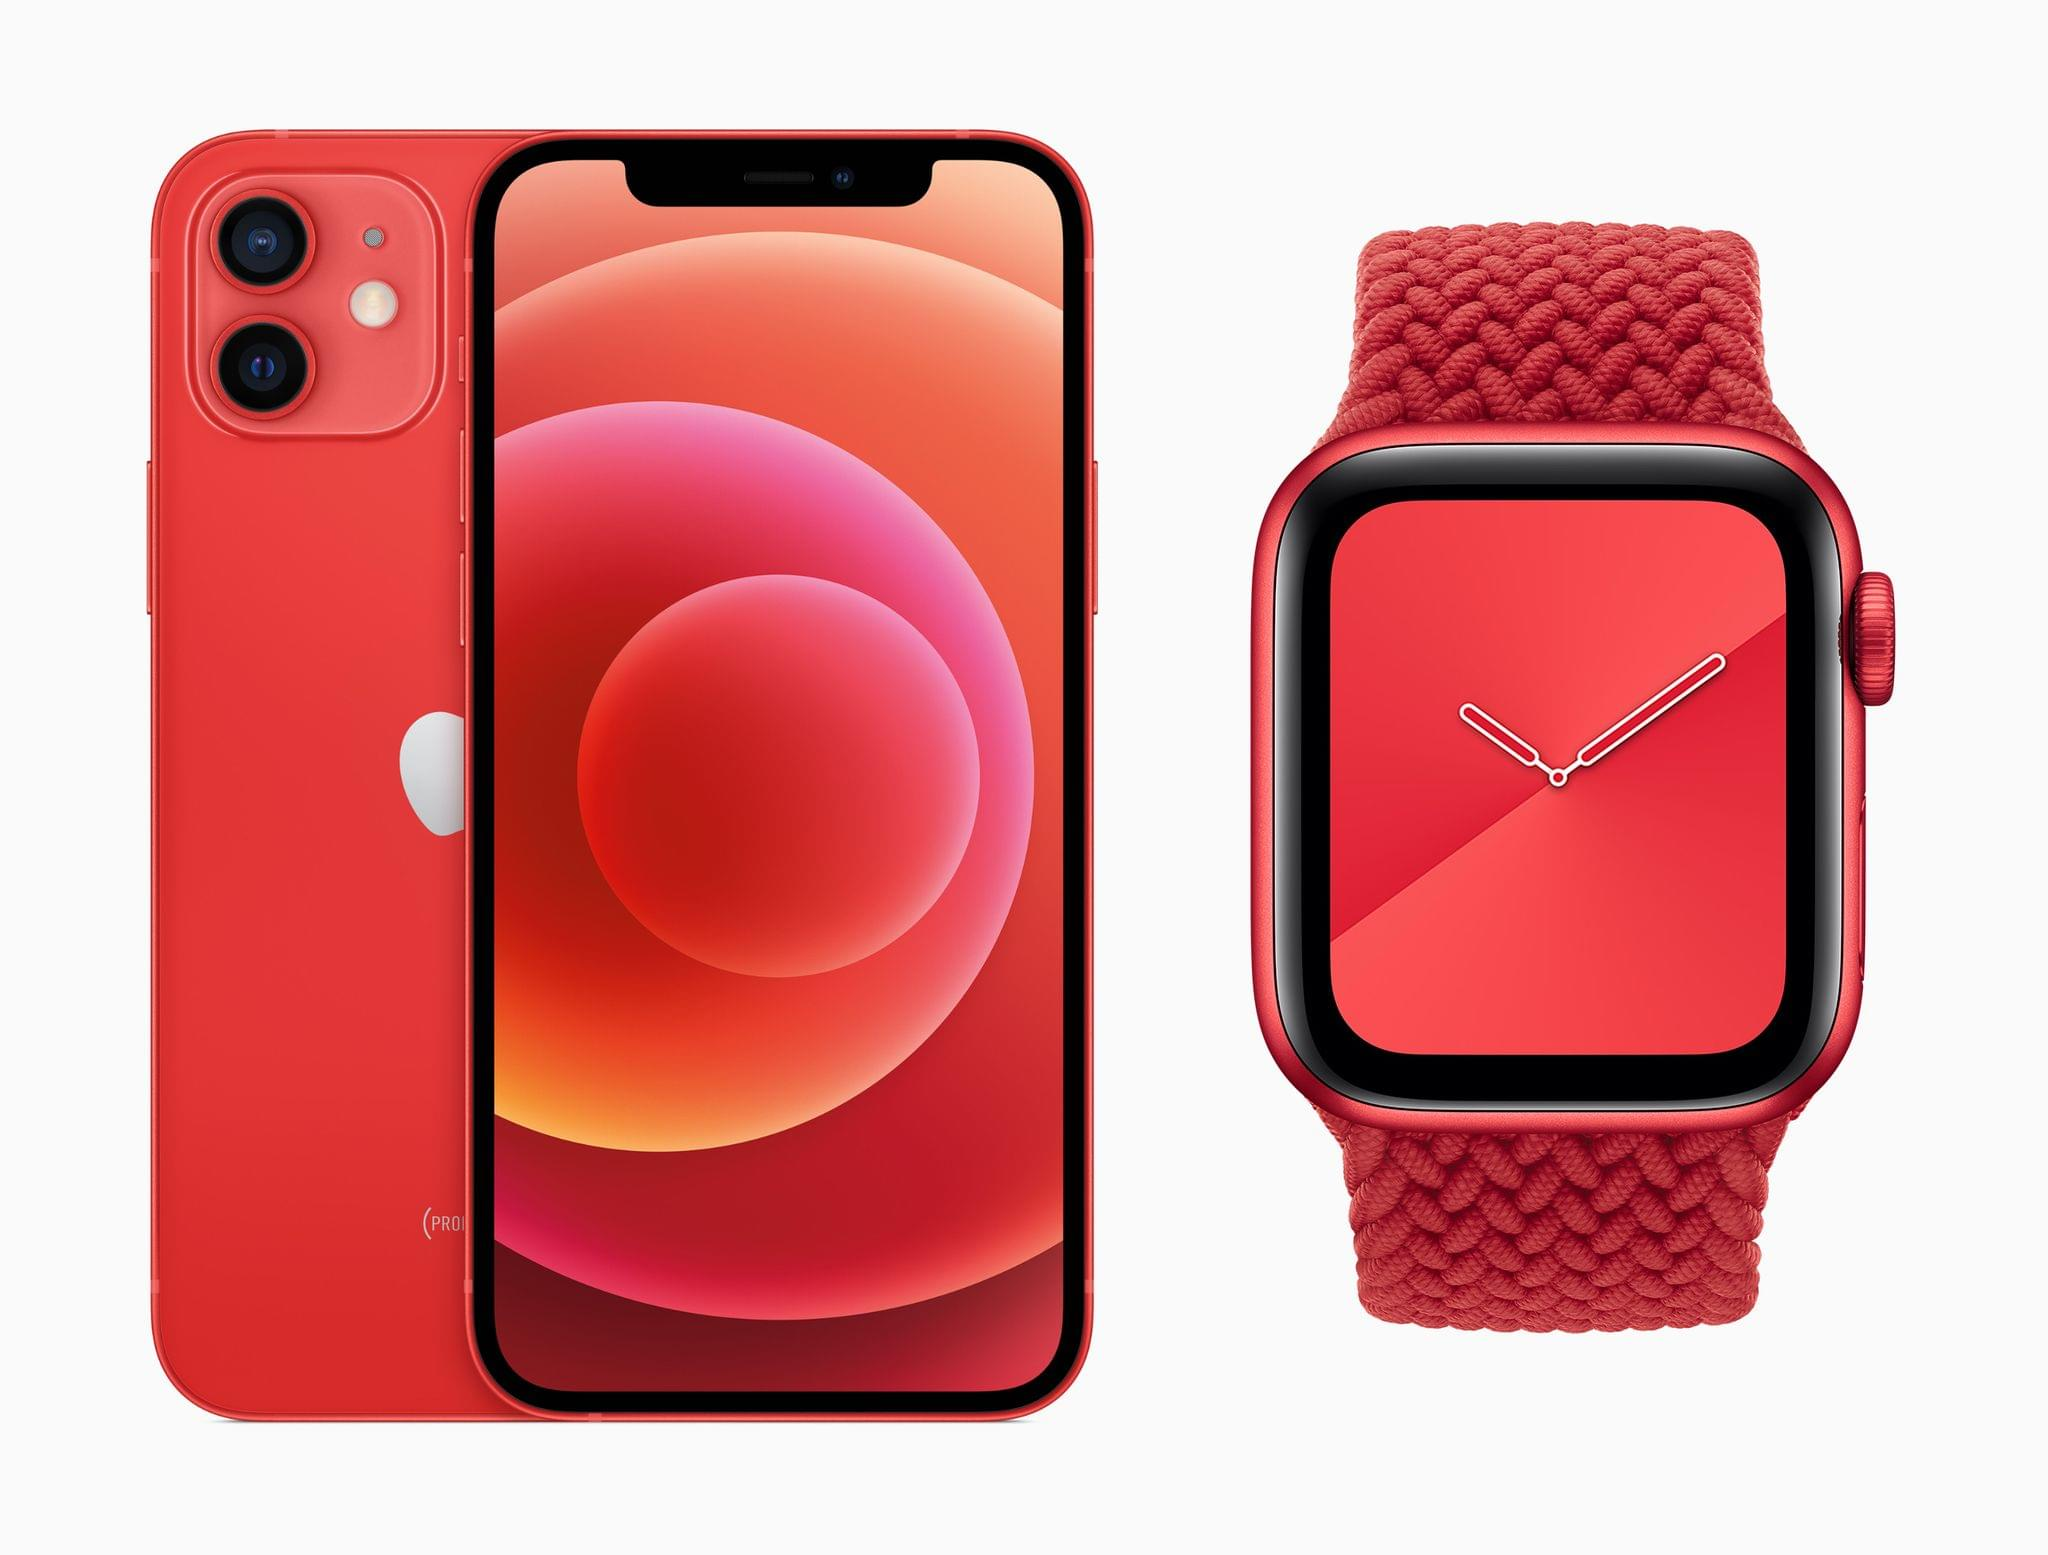 The PRODUCT(RED) iPhone 12 and Apple Watch Series 6.